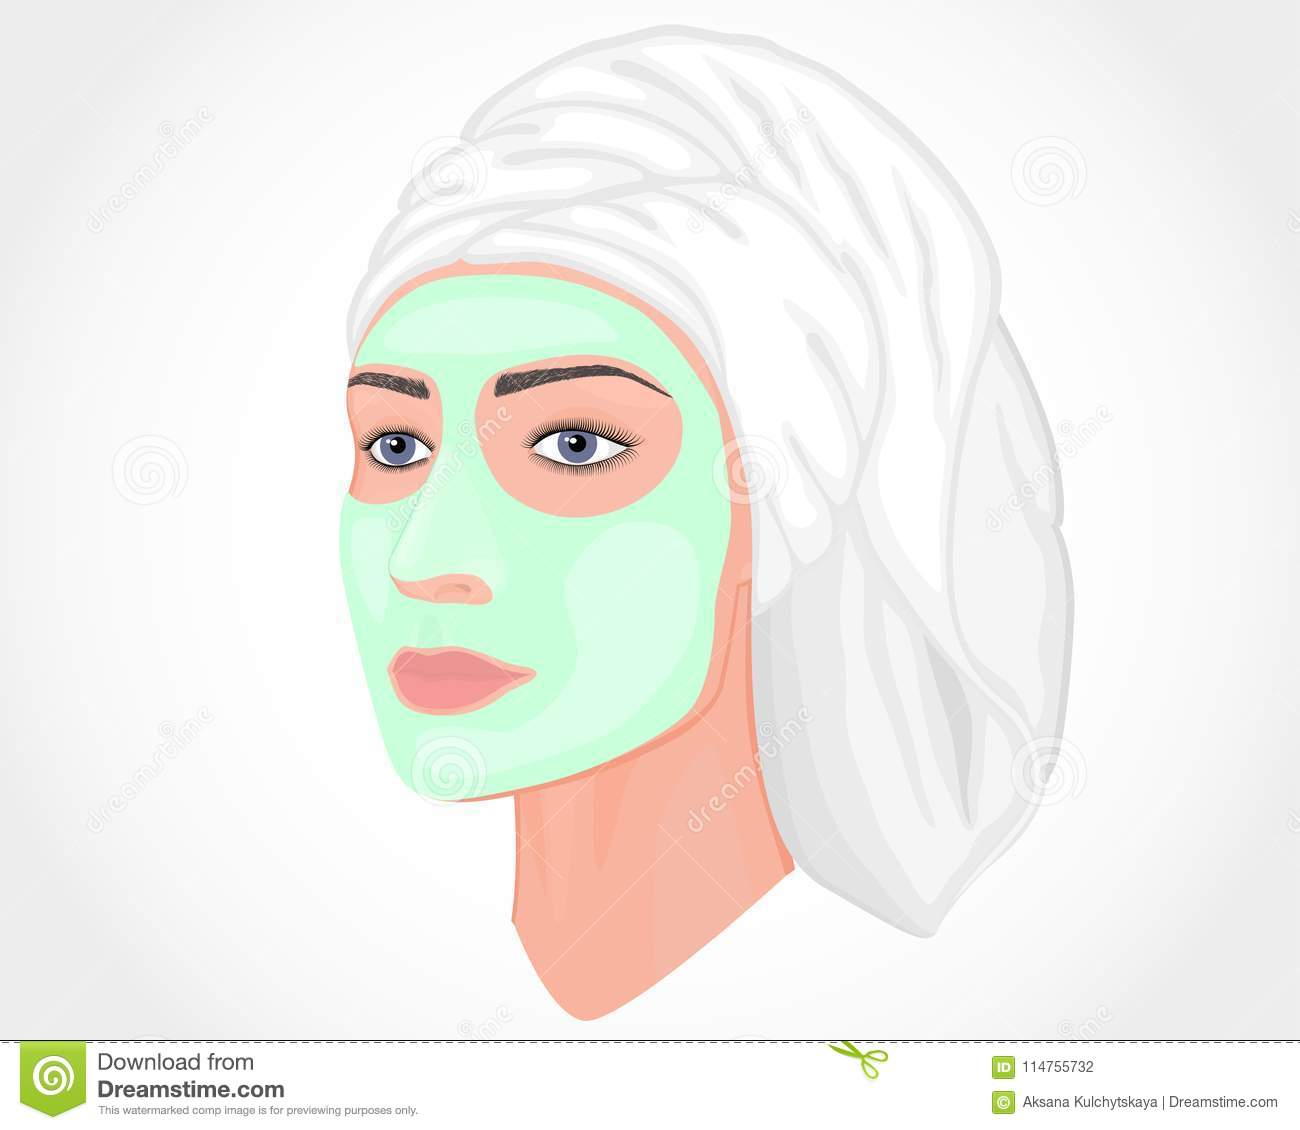 Face Towel Dream Meaning: Plastic Surgery_Woman With Green Mask And Towel On Her